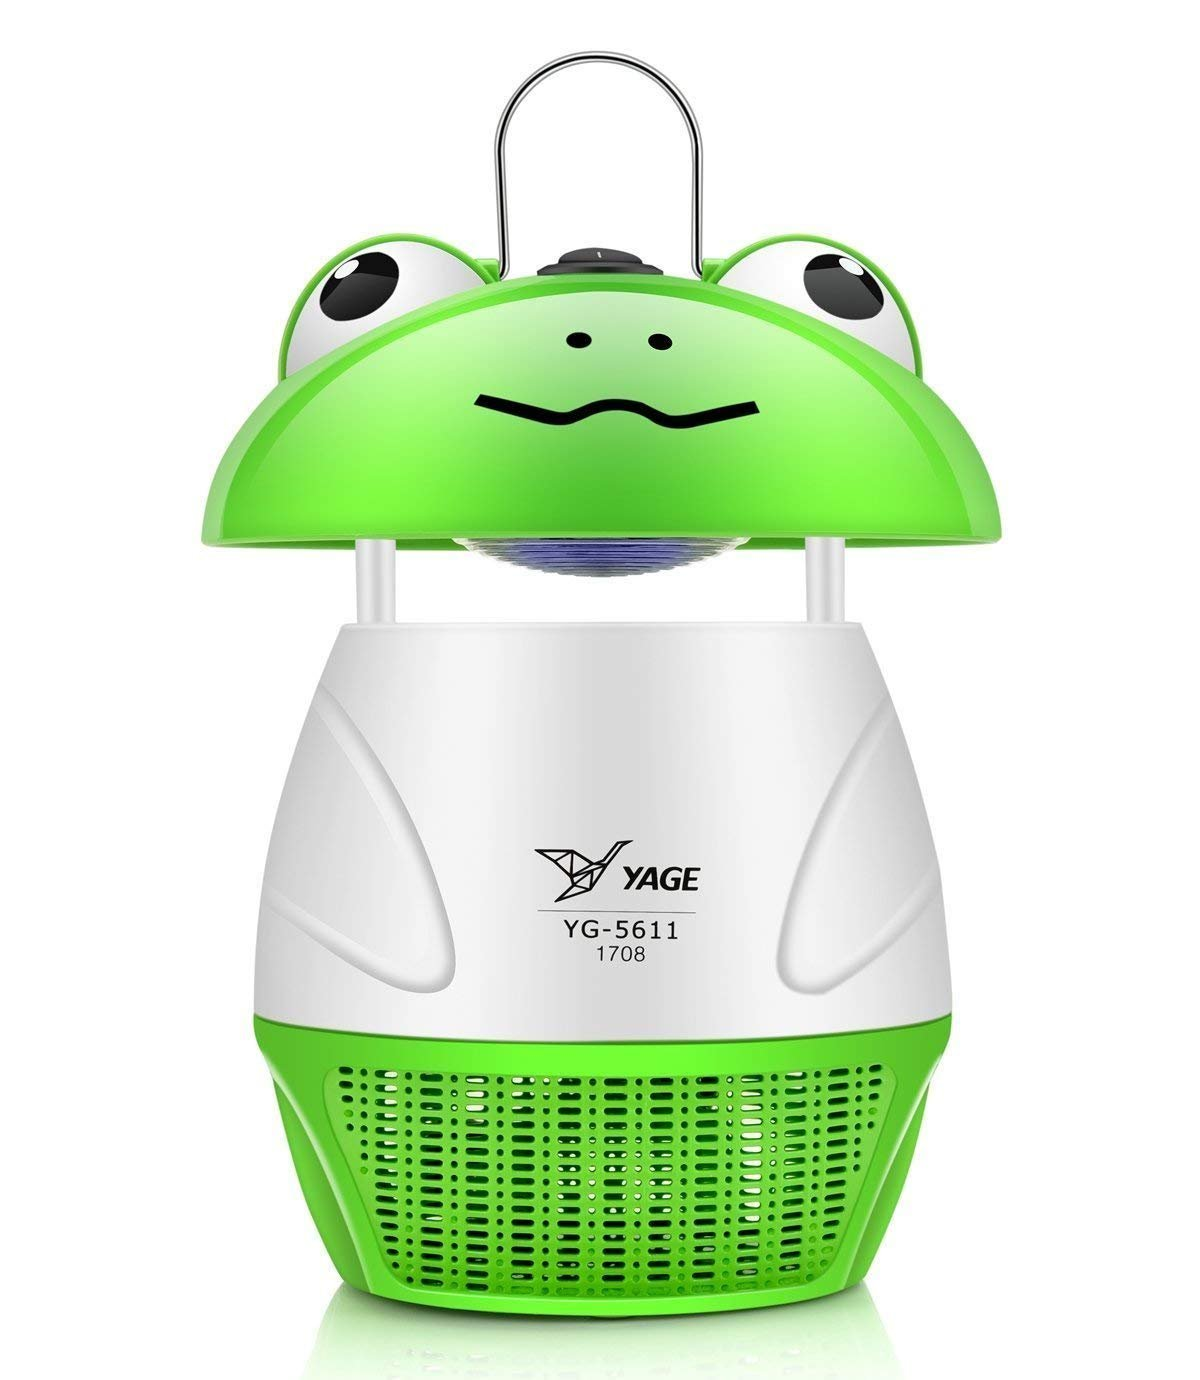 AOWOTO Inhaler Electronic Mosquito Killer Lamp Bug Zapper - Eco-friendly Baby Photocatalyst for Home Indoor Repellent Trap Pest Fly Swatter Insect Control